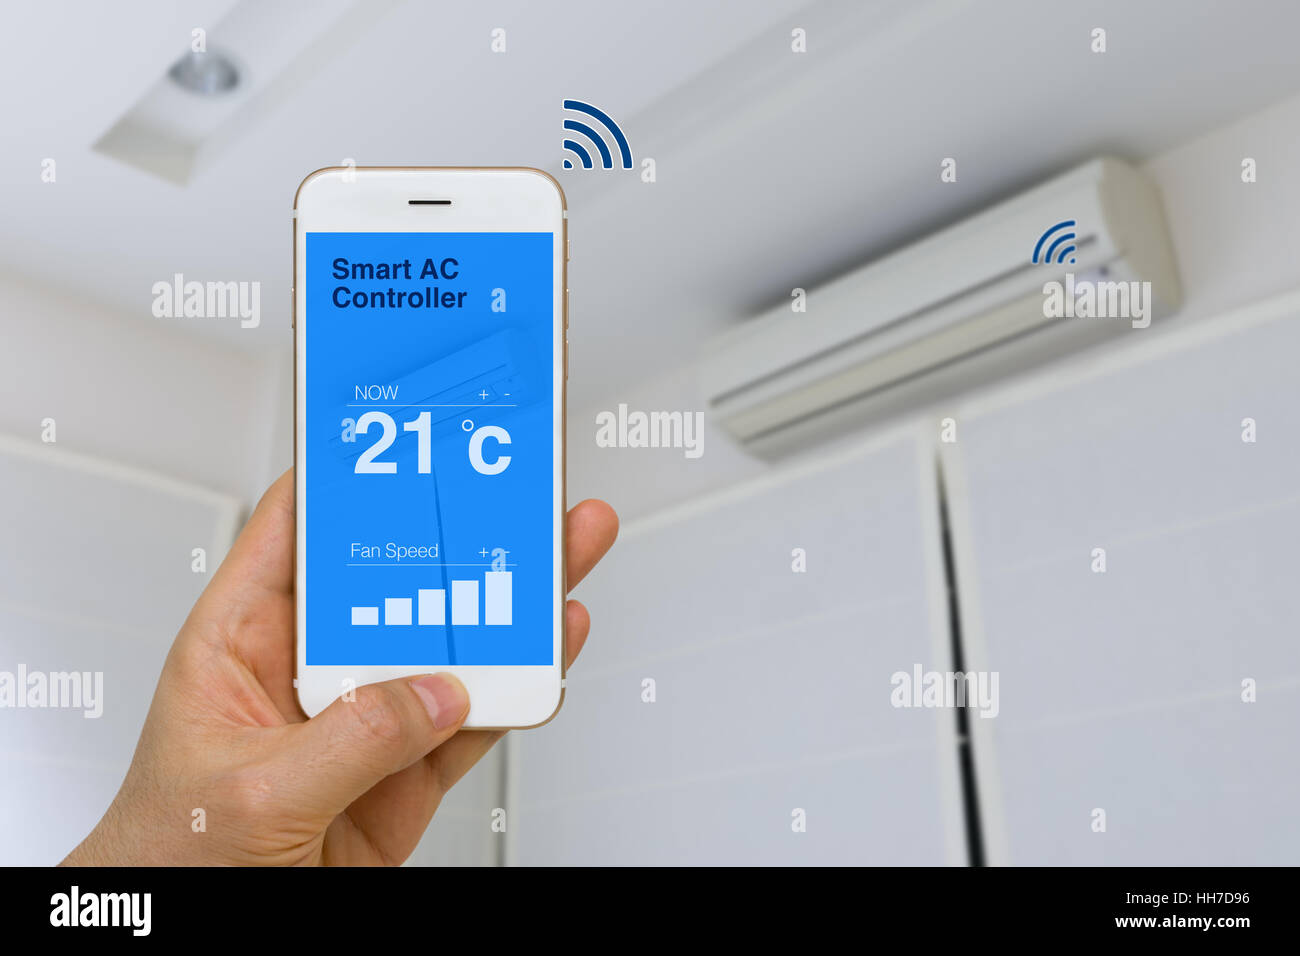 Concept of IOT, remotely controlling smart air conditioner with app on smartphone from distance. - Stock Image